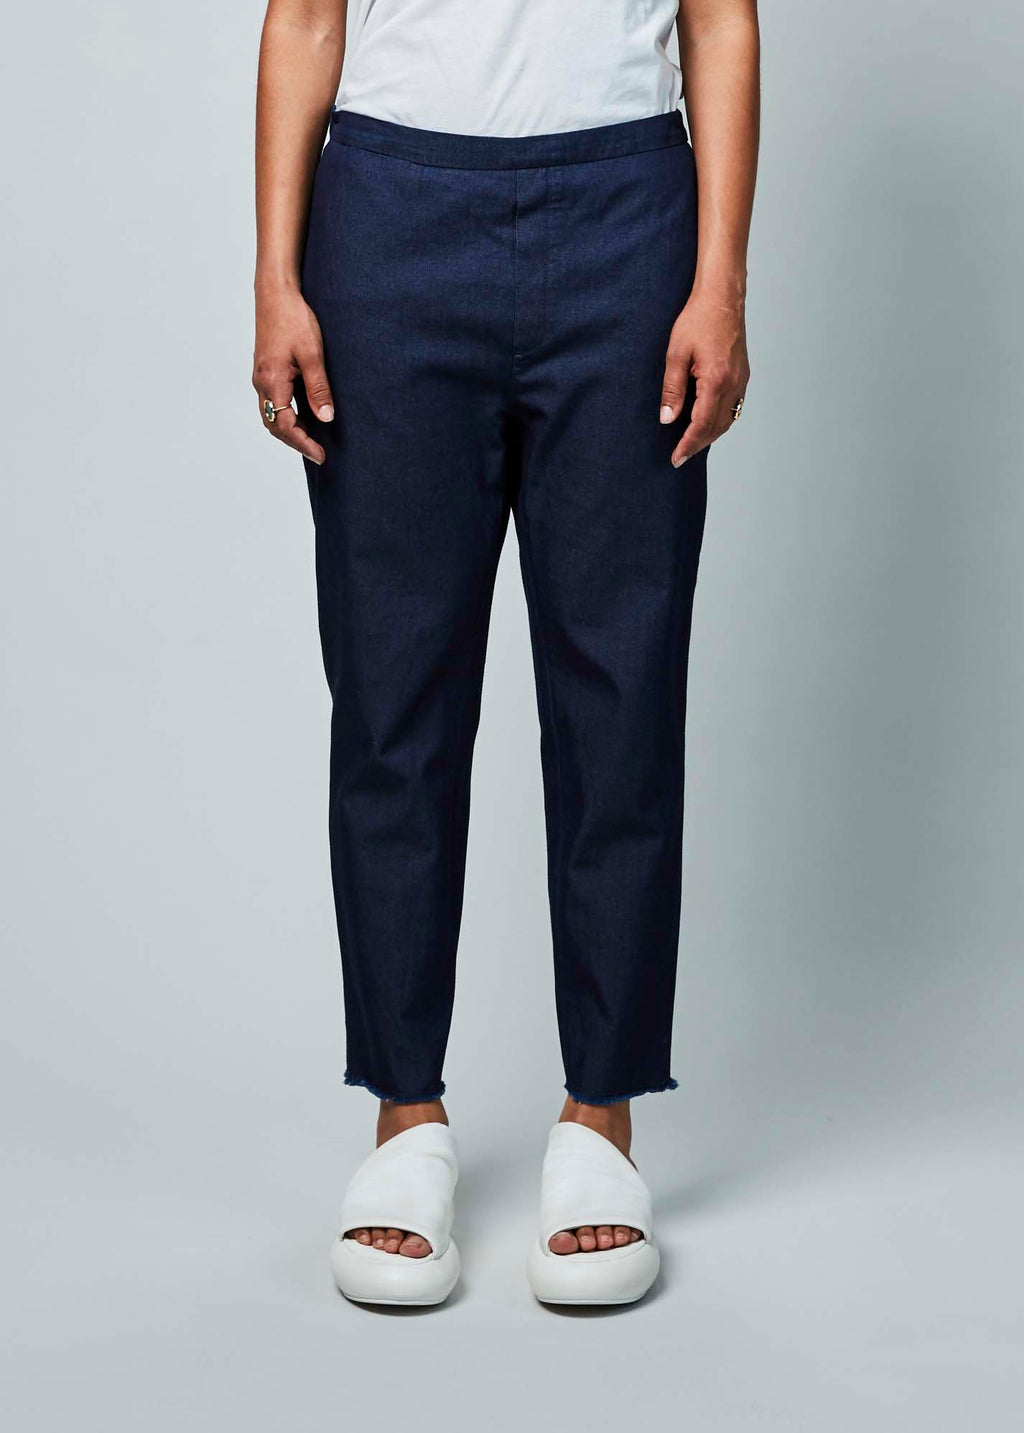 Pullup Denim Pant